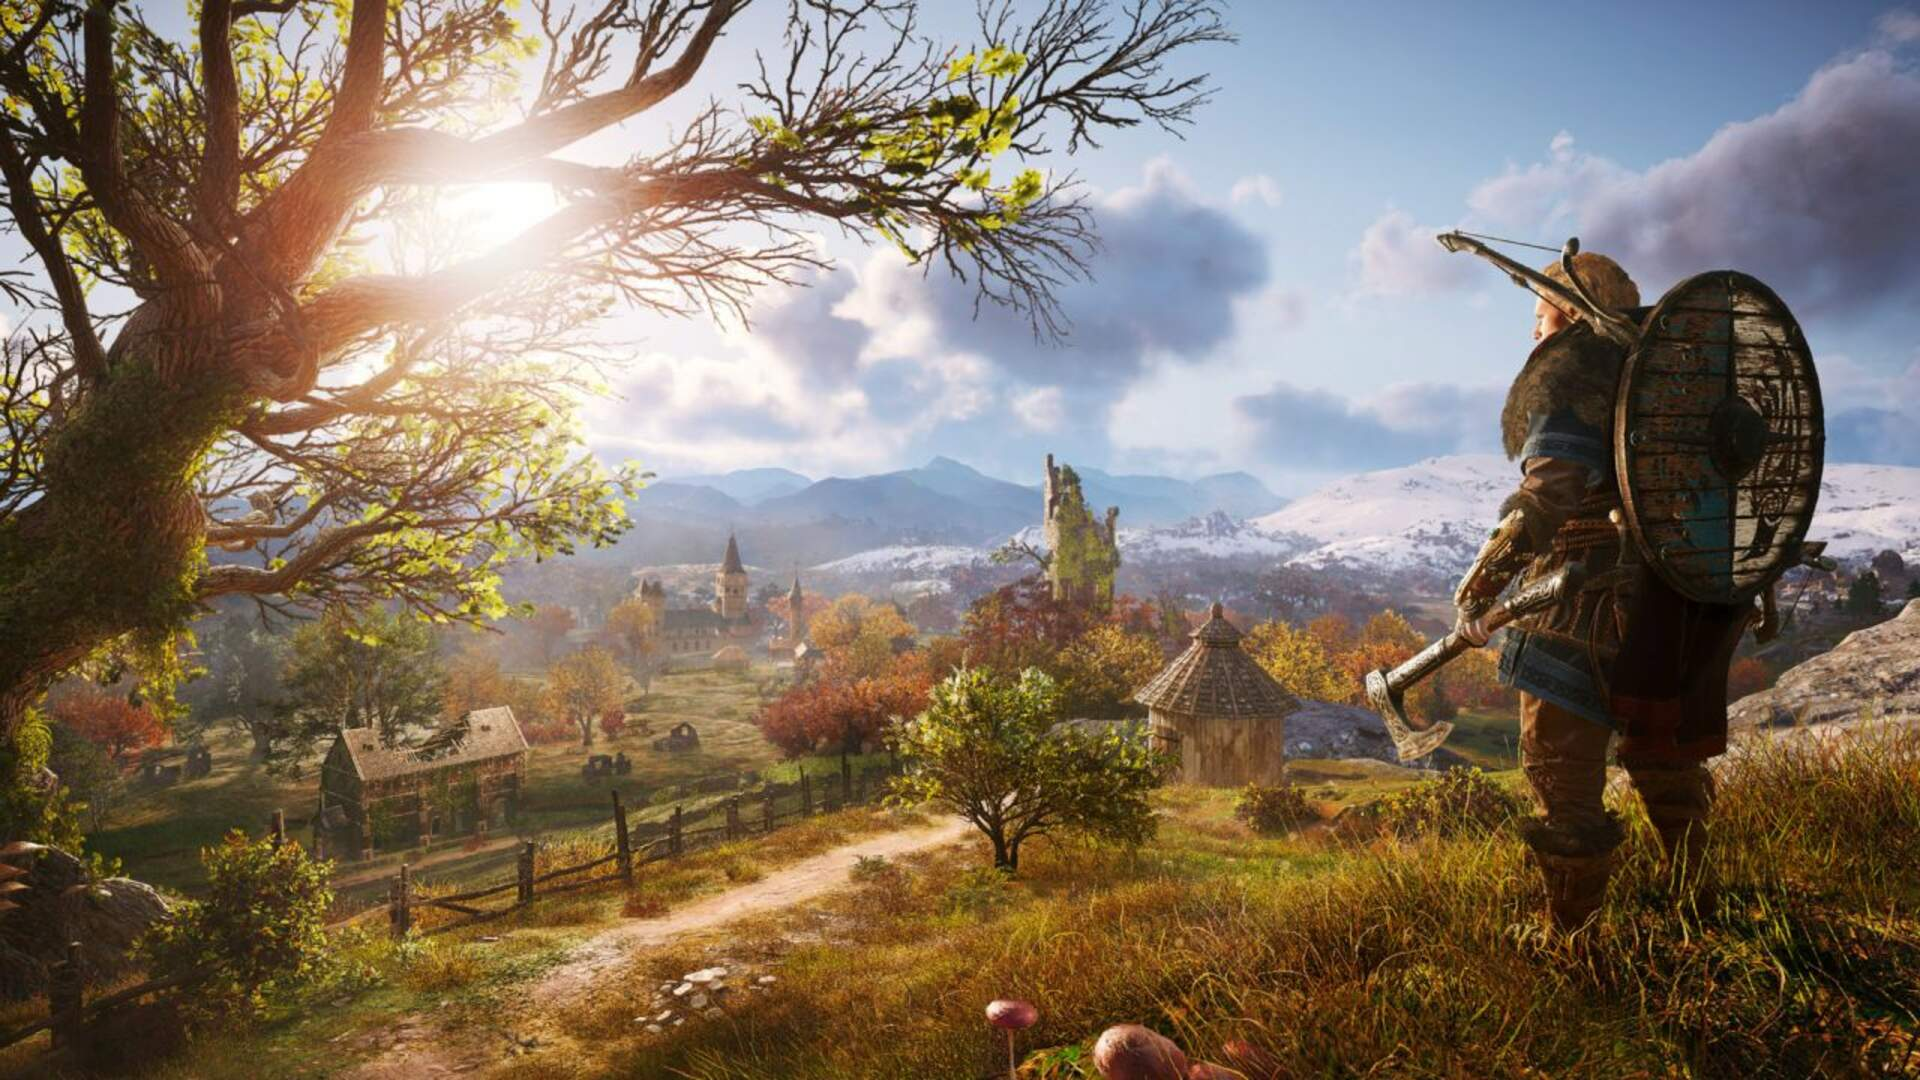 Assassin's Creed Valhalla Is Coming This Holiday to Current and Next-Gen Consoles